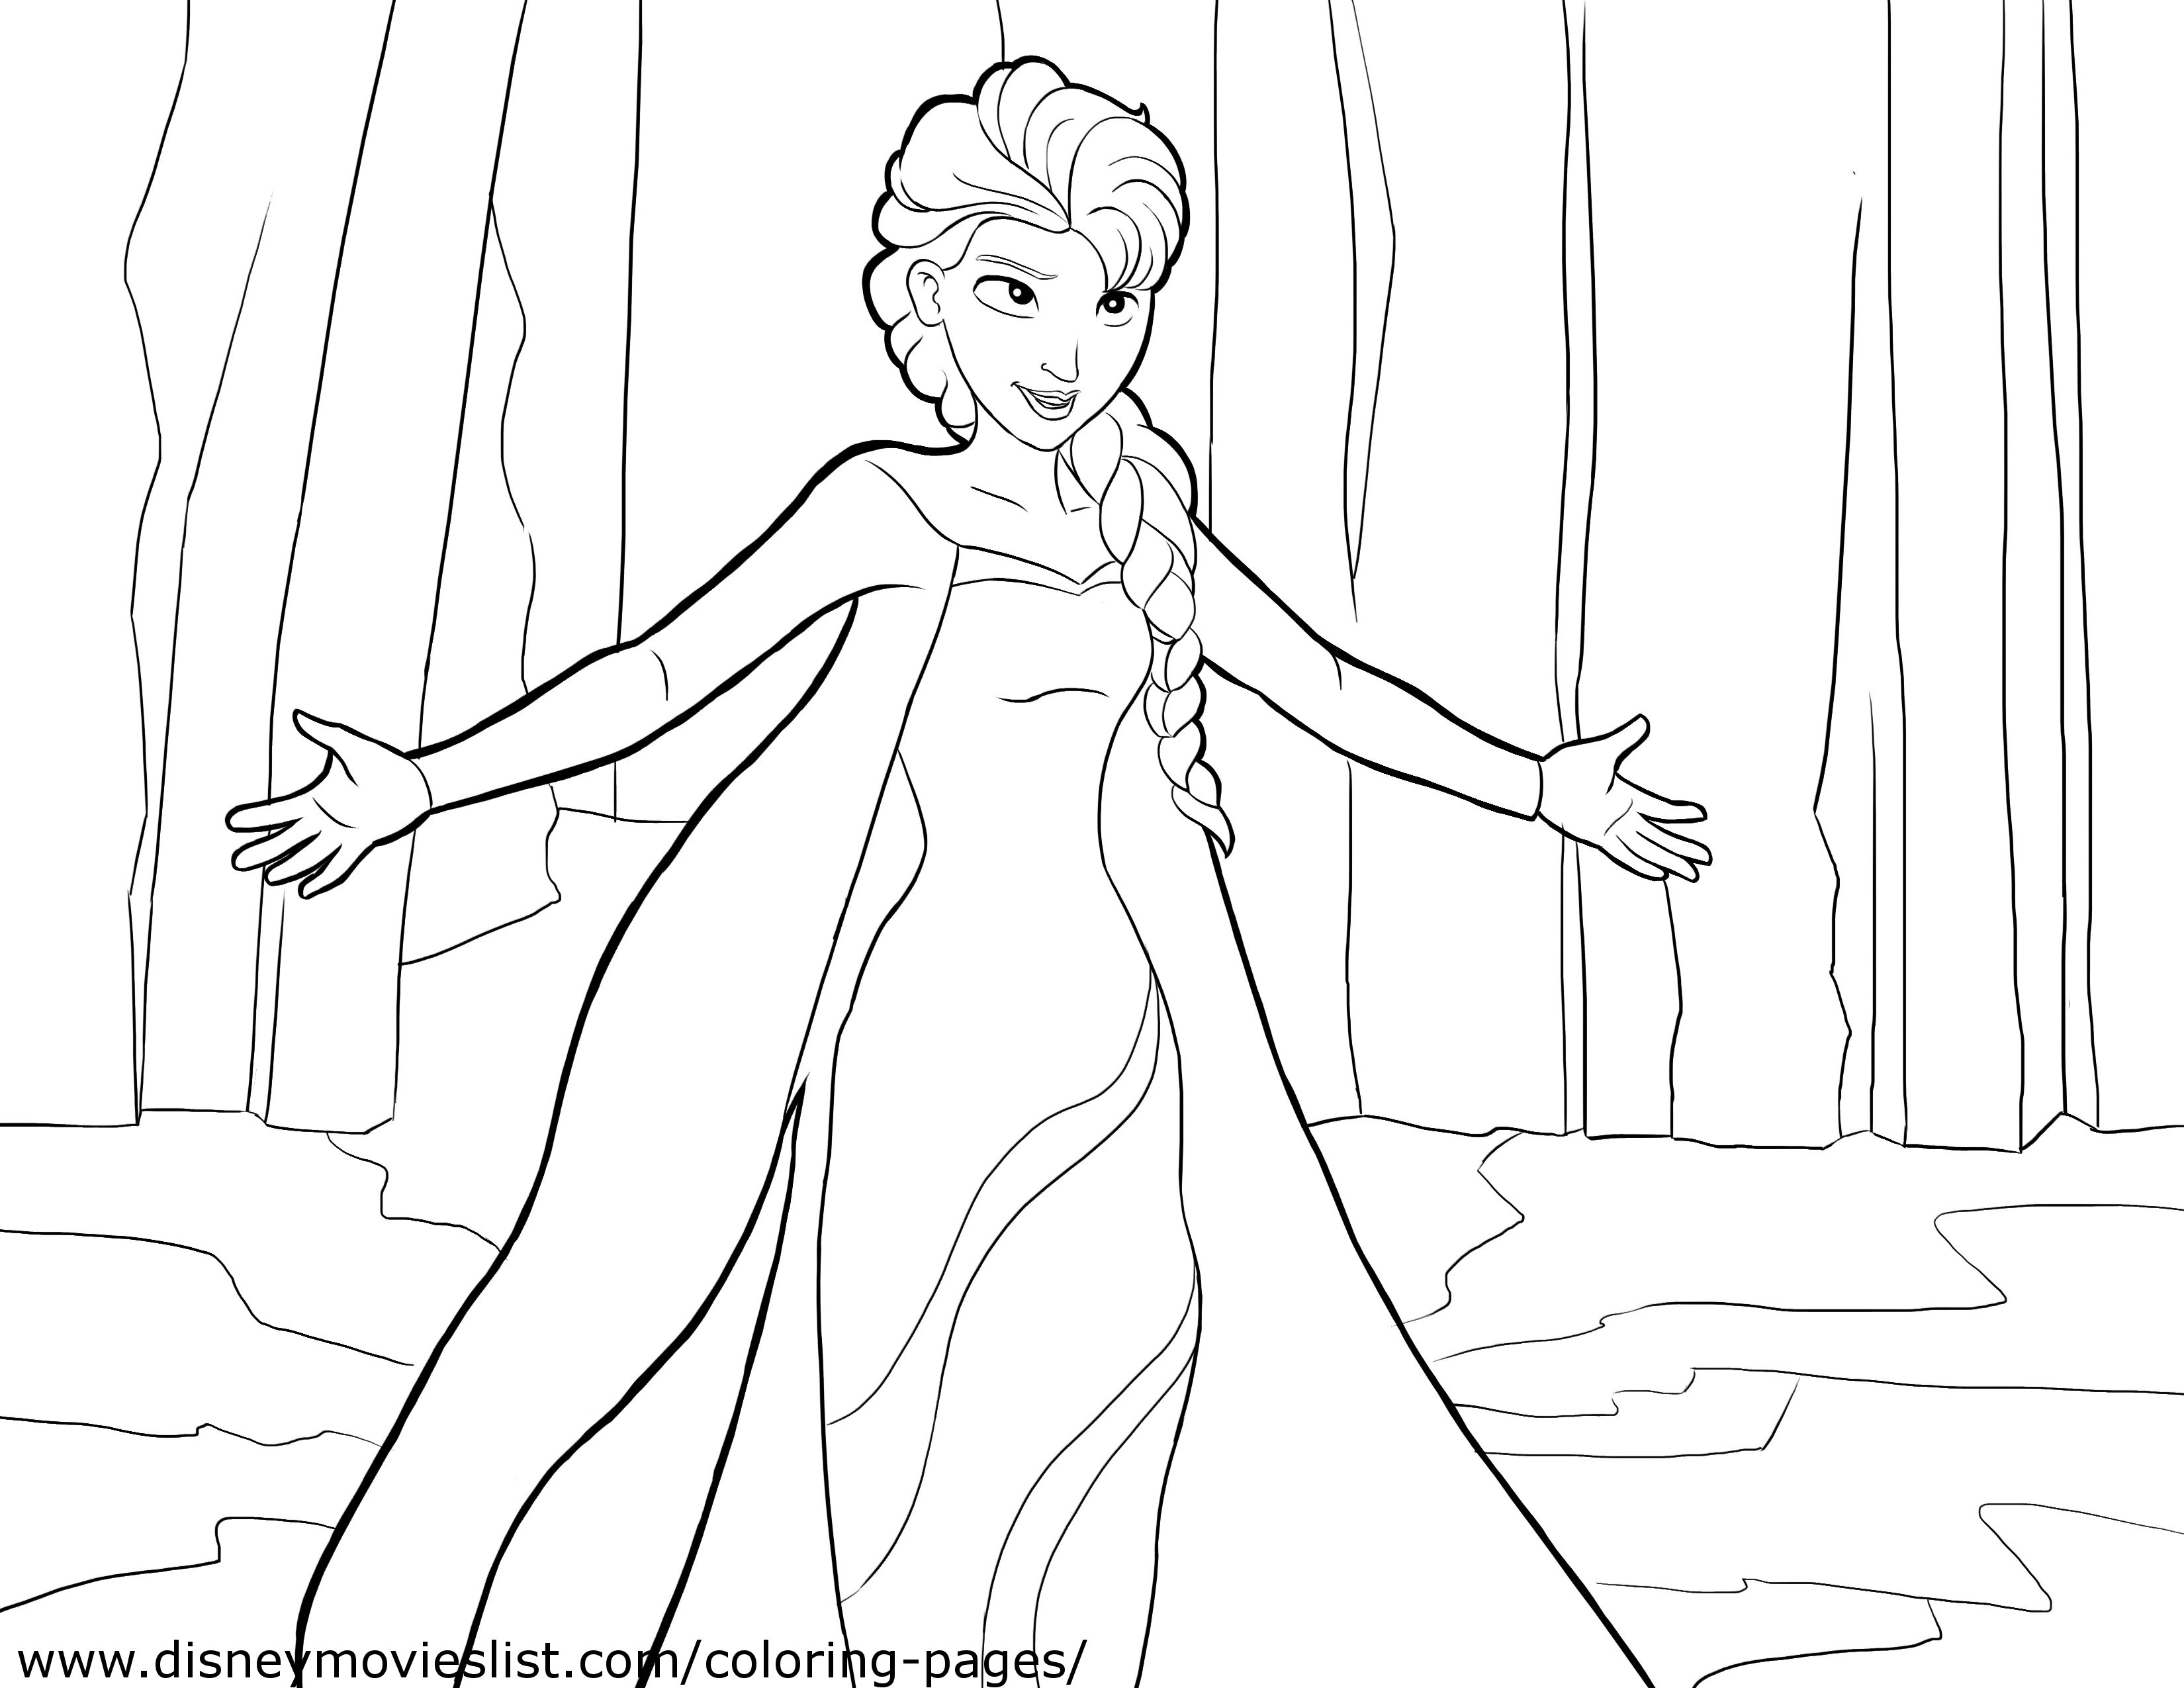 Elsa Coloring Page - Elsa and Anna Photo (36145910) - Fanpop